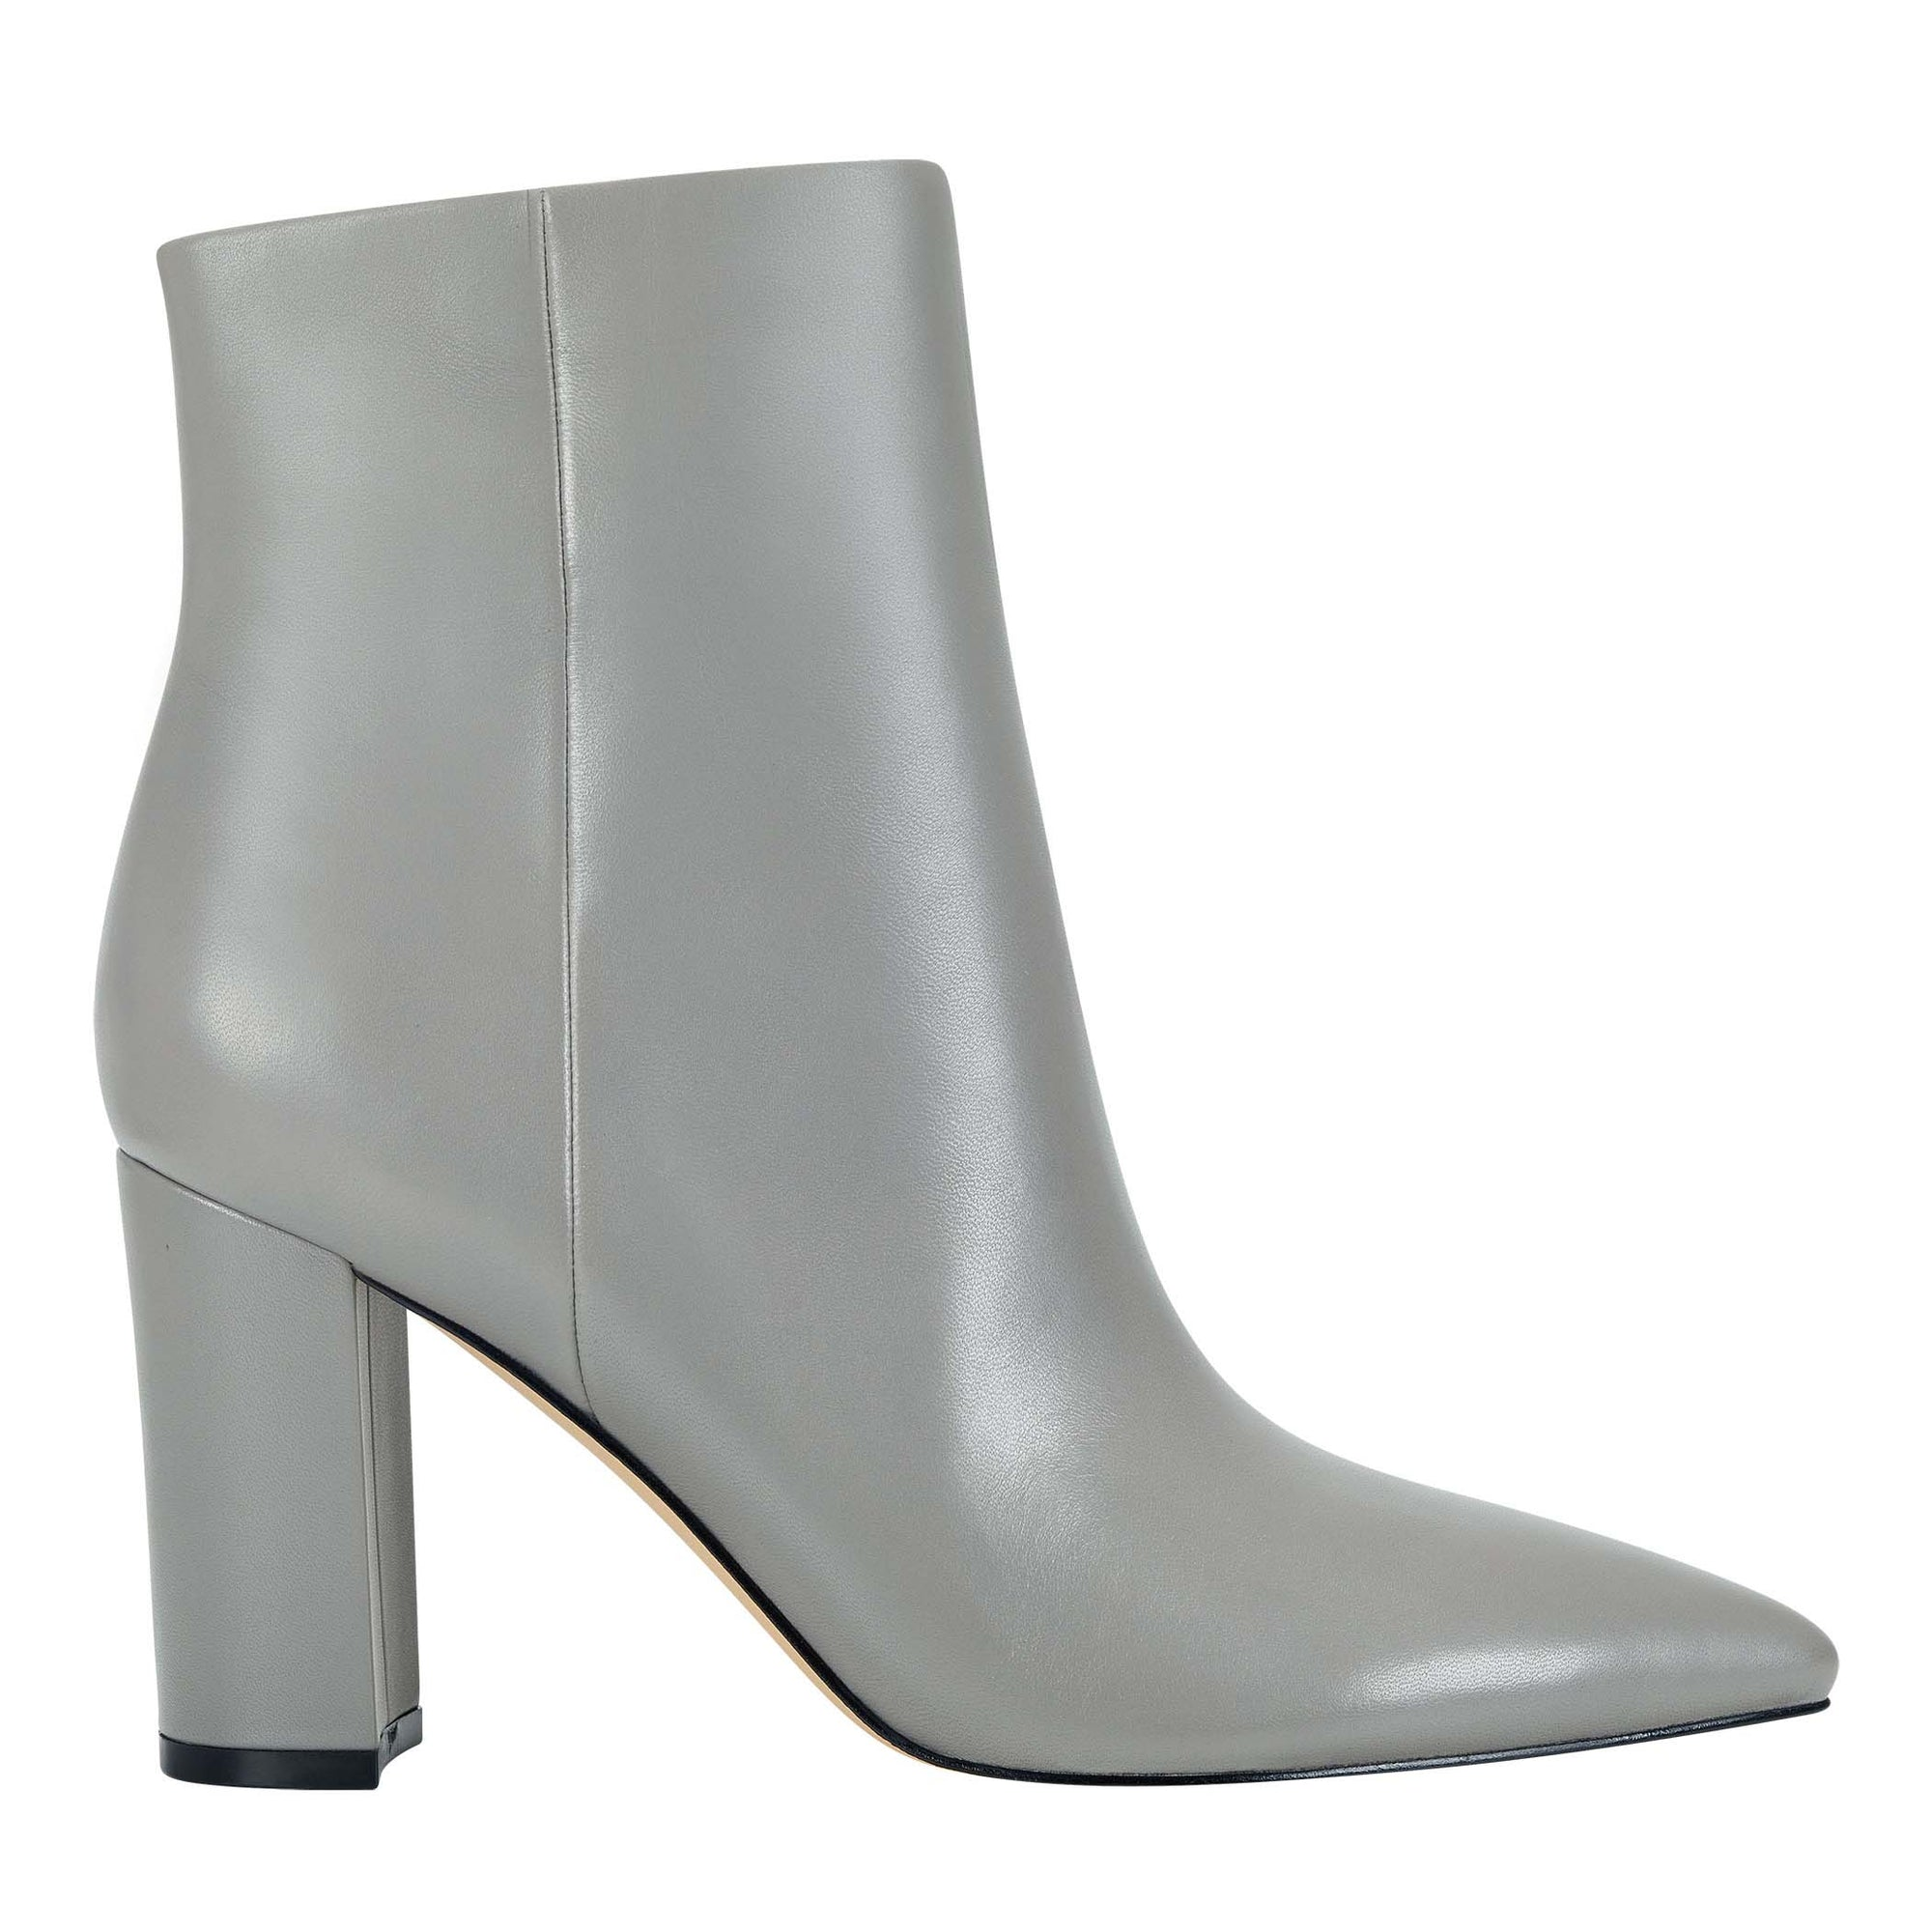 ulani-heeled-bootie-in-dark-grey-leather